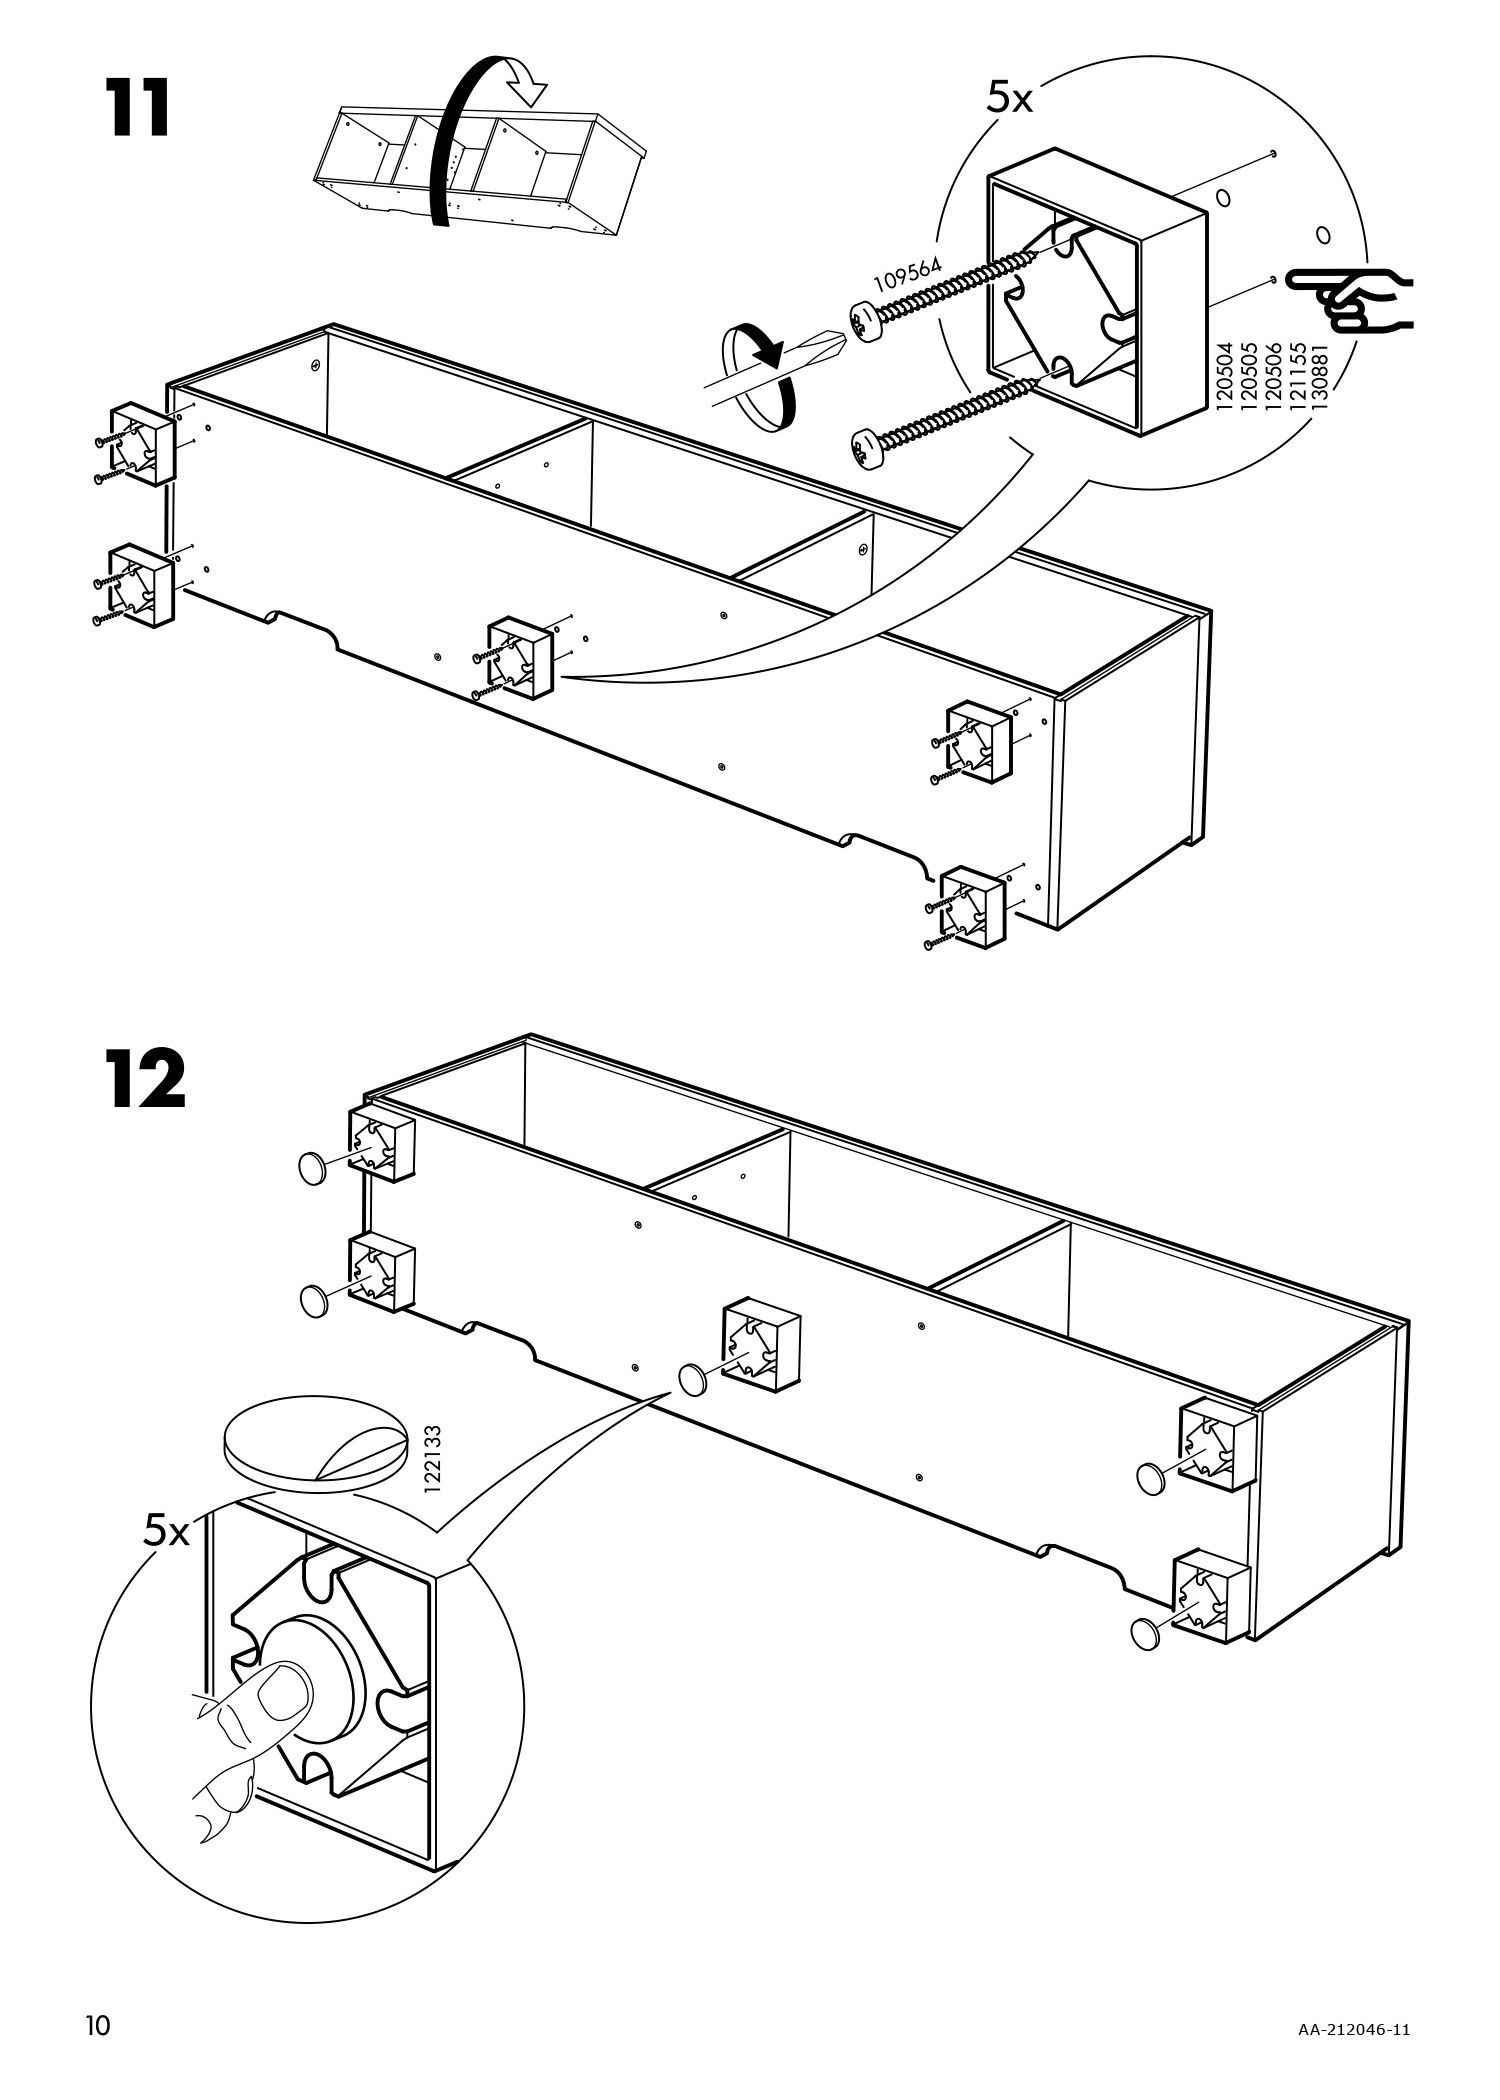 Ikea Instruction Manuals The Best Of Manual And User Guide Design Threefifty Desenhos E